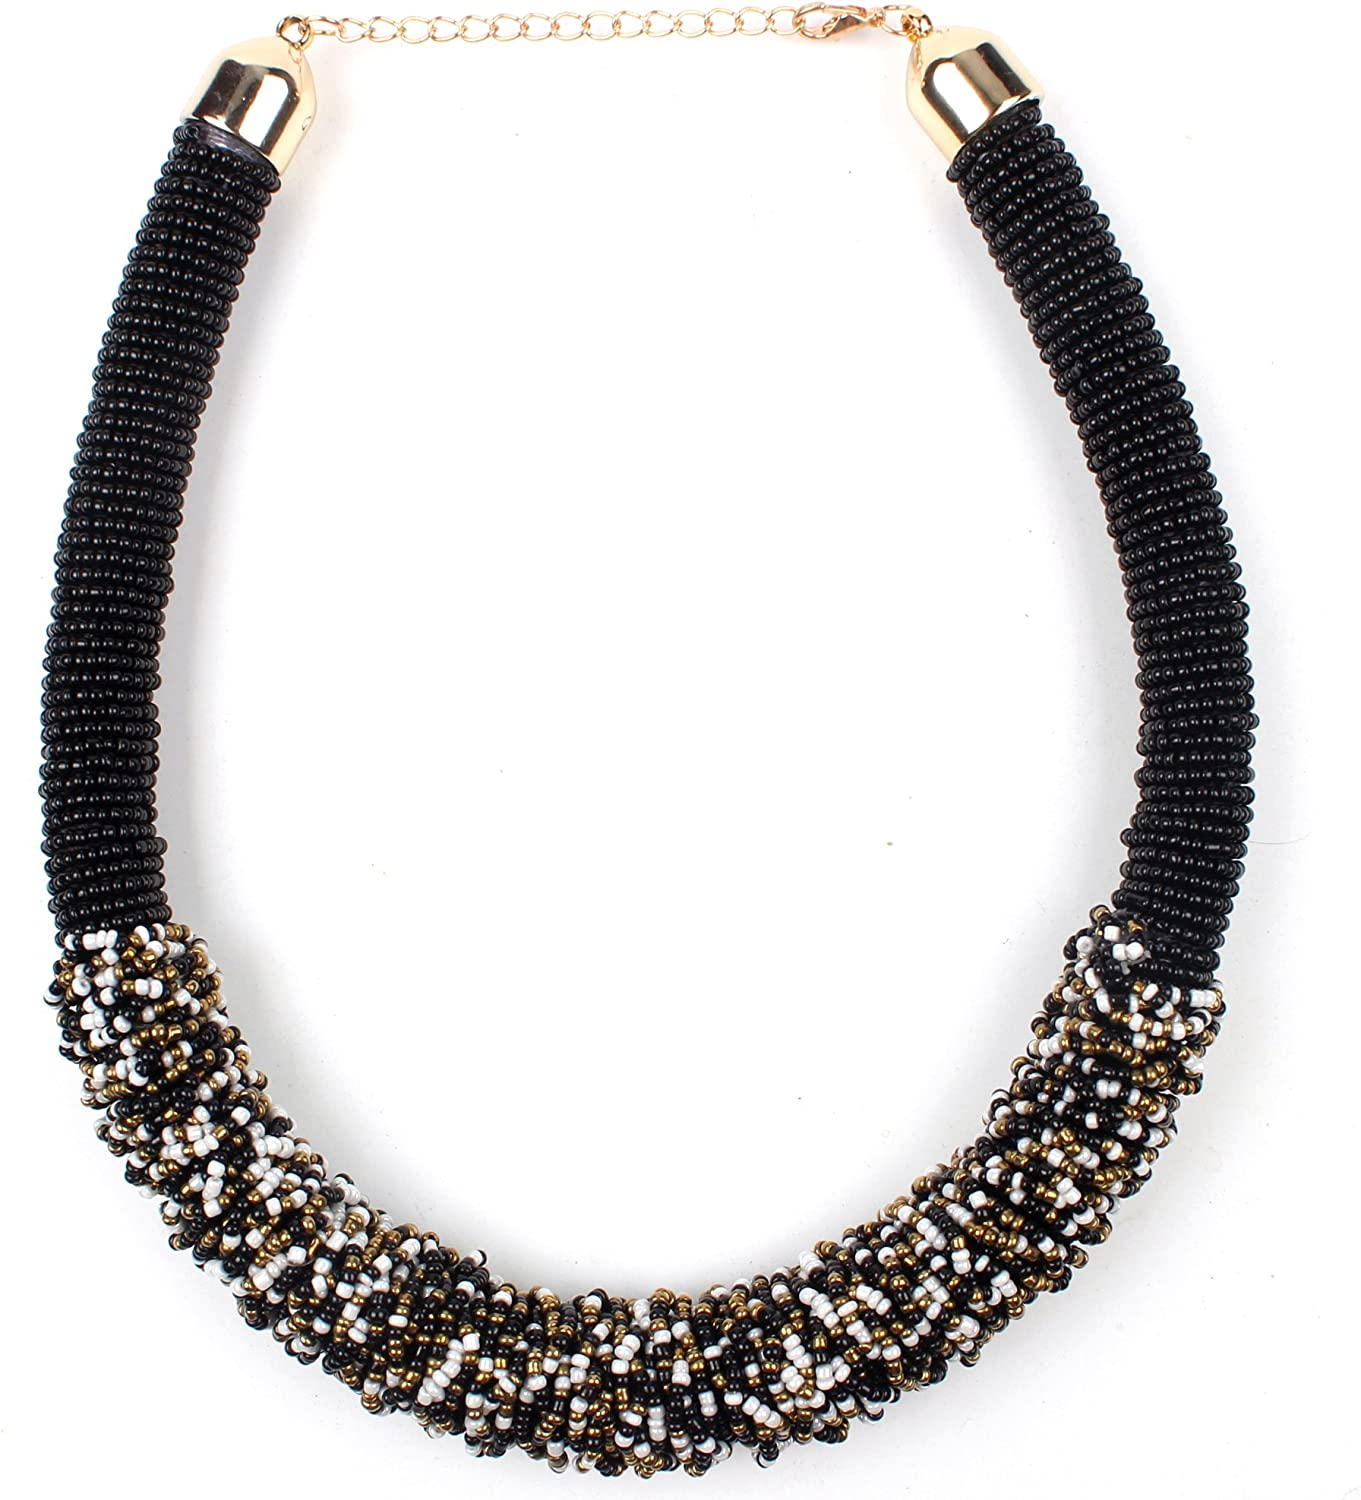 Handmade Beaded Multi Strand Necklace for Women /& Girls Alloy Necklace.RELIABLE